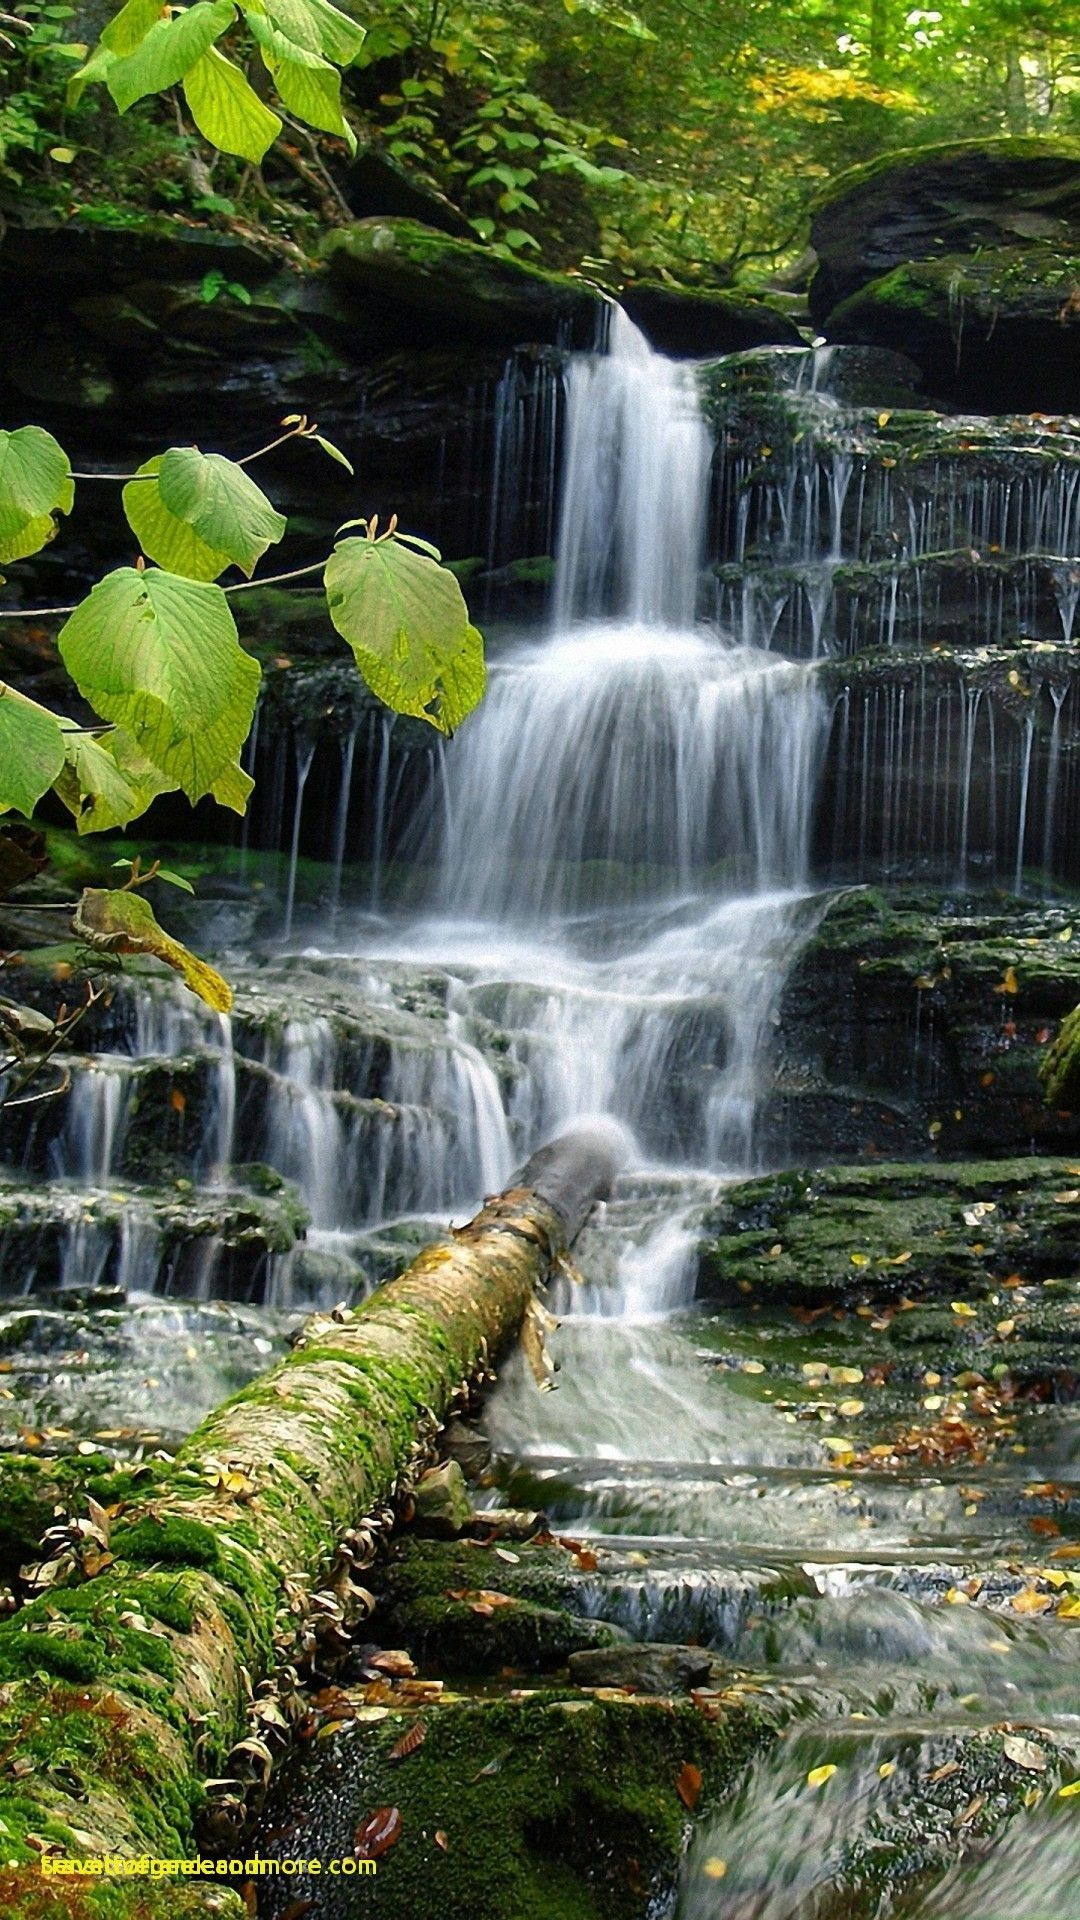 Nature Water Hd Wallpaper Android In 2020 3d Nature Wallpaper Nature Background Images Nature Wallpaper